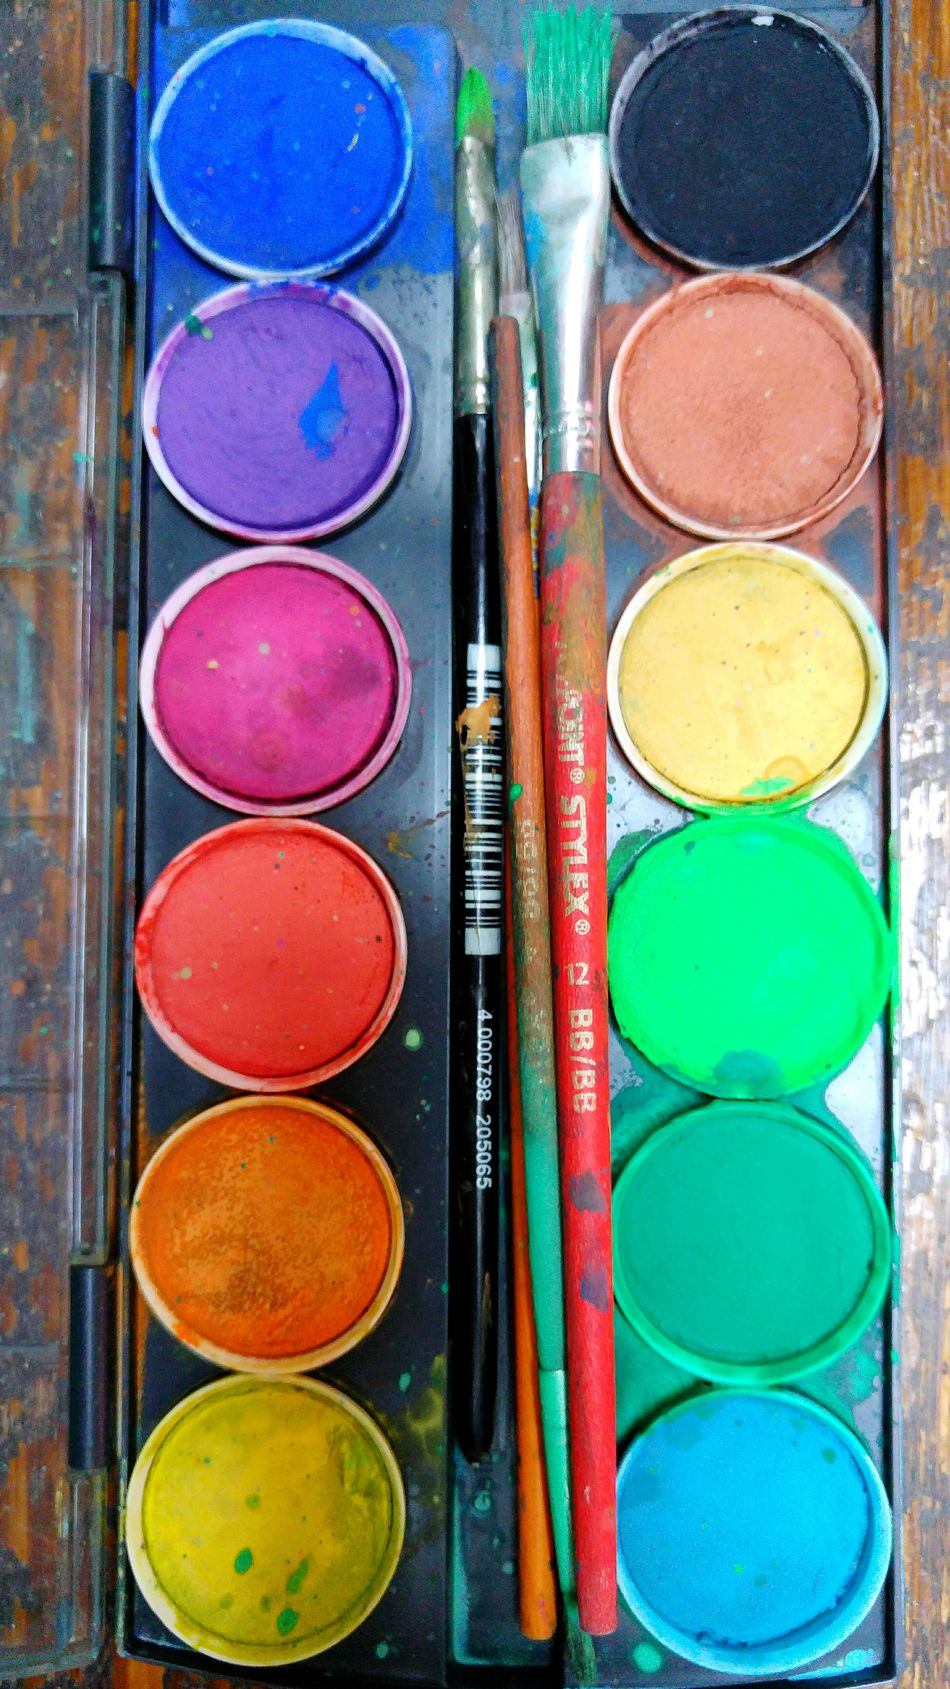 Wasserfarben Wasserfarbkasten Färben Farbenfroh Farbenpracht Colours Colourful Coloursplash Colour Explosion Painting PaintBox Box Of Paint Watercolours Watercolors  WaterColorCollection Collection Home Is Where The Art Is Color Palette Handmade For You